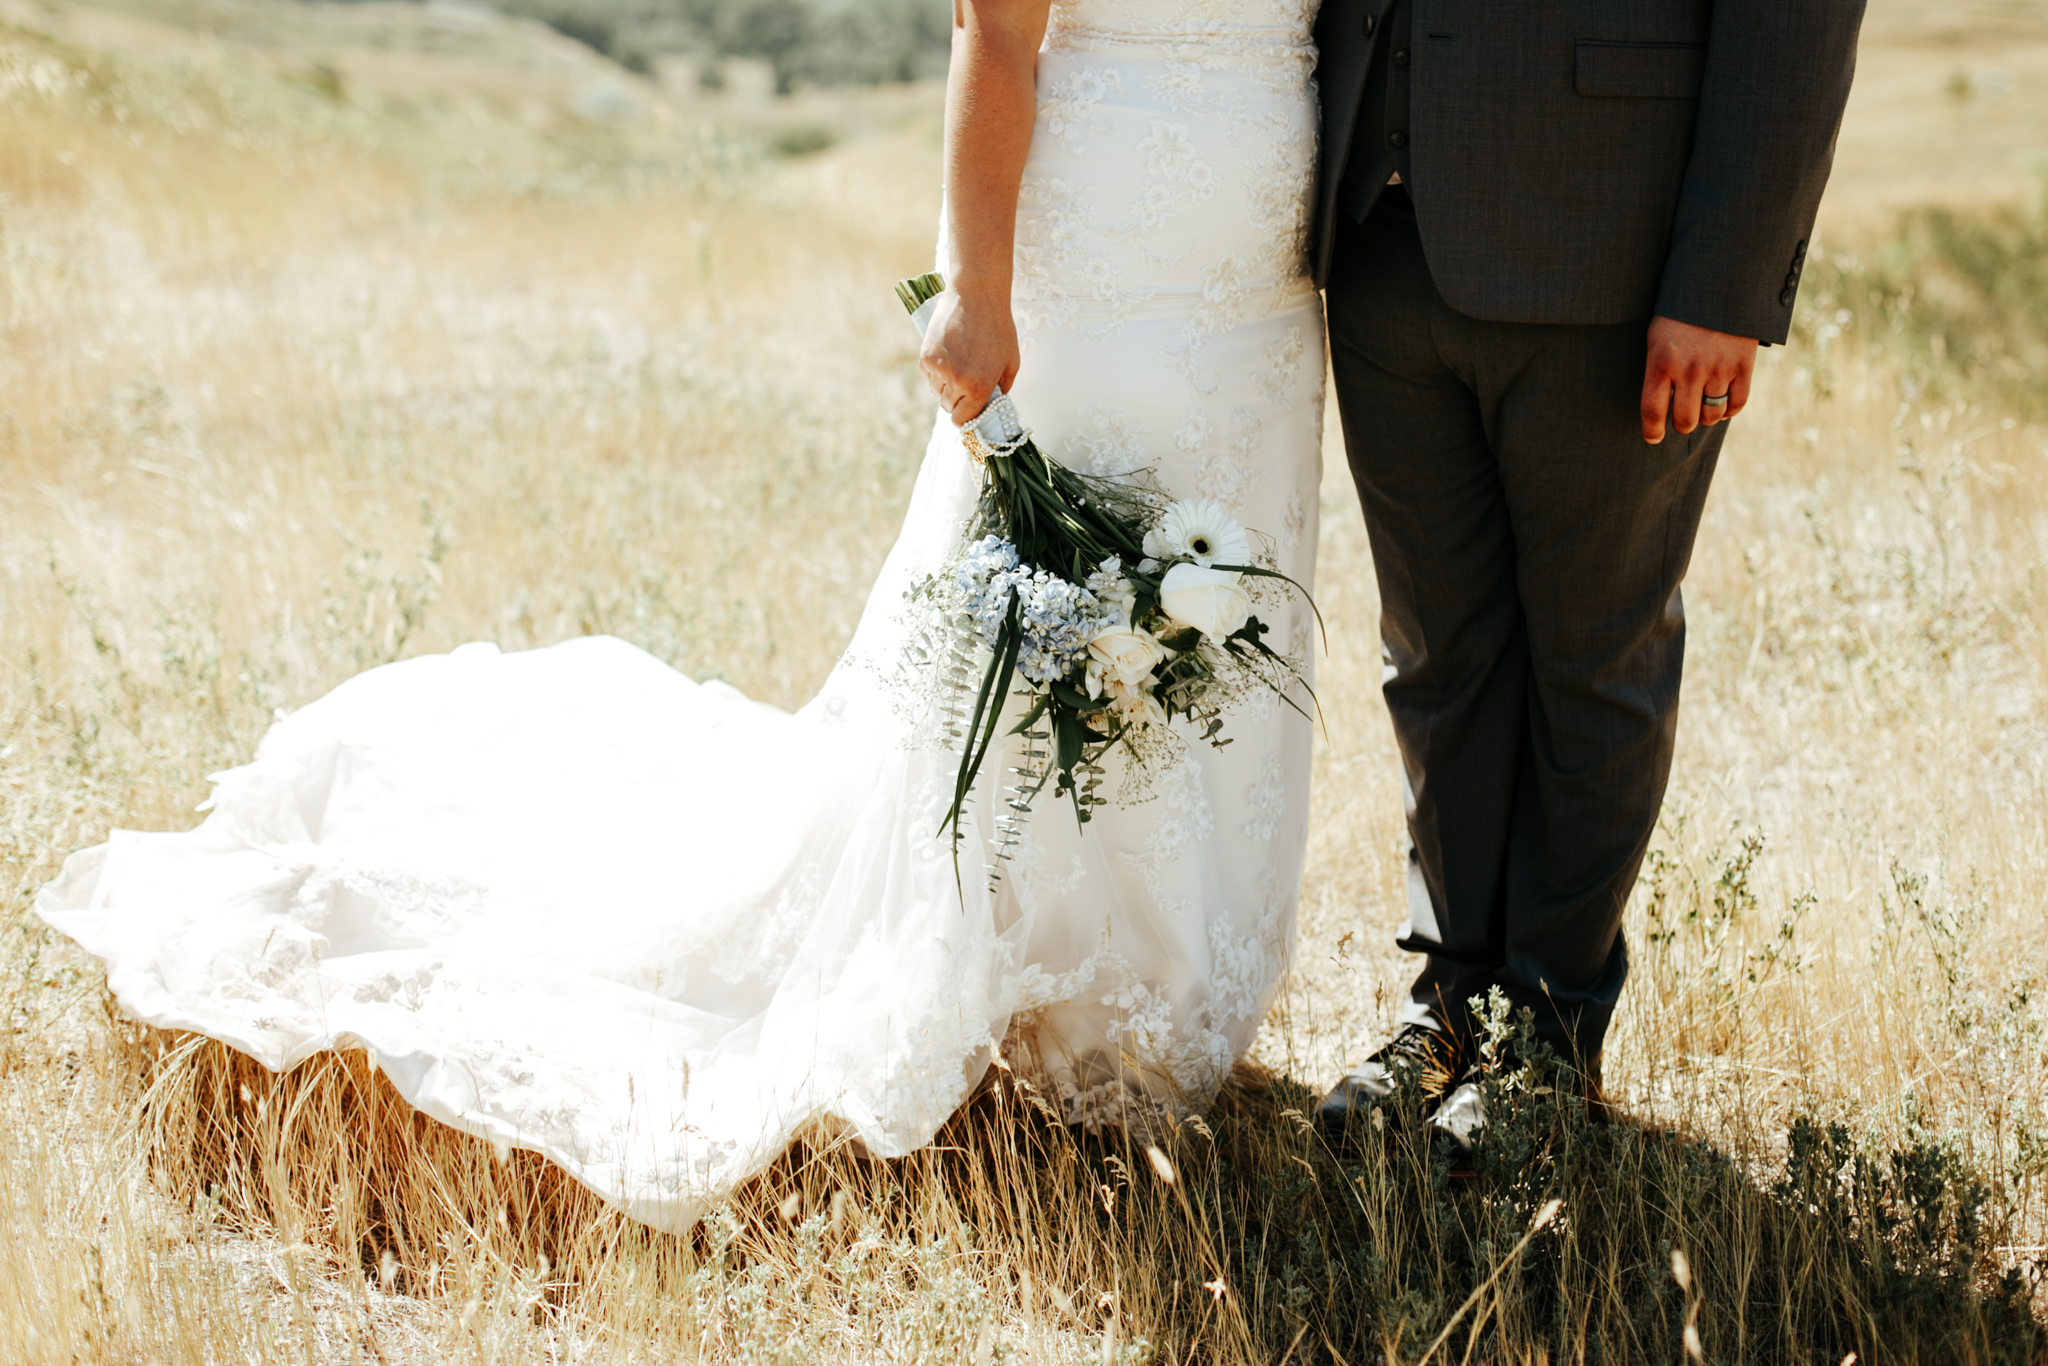 lethbridge-wedding-photographer-love-and-be-loved-photography-trent-danielle-galt-reception-picture-image-photo-95.jpg